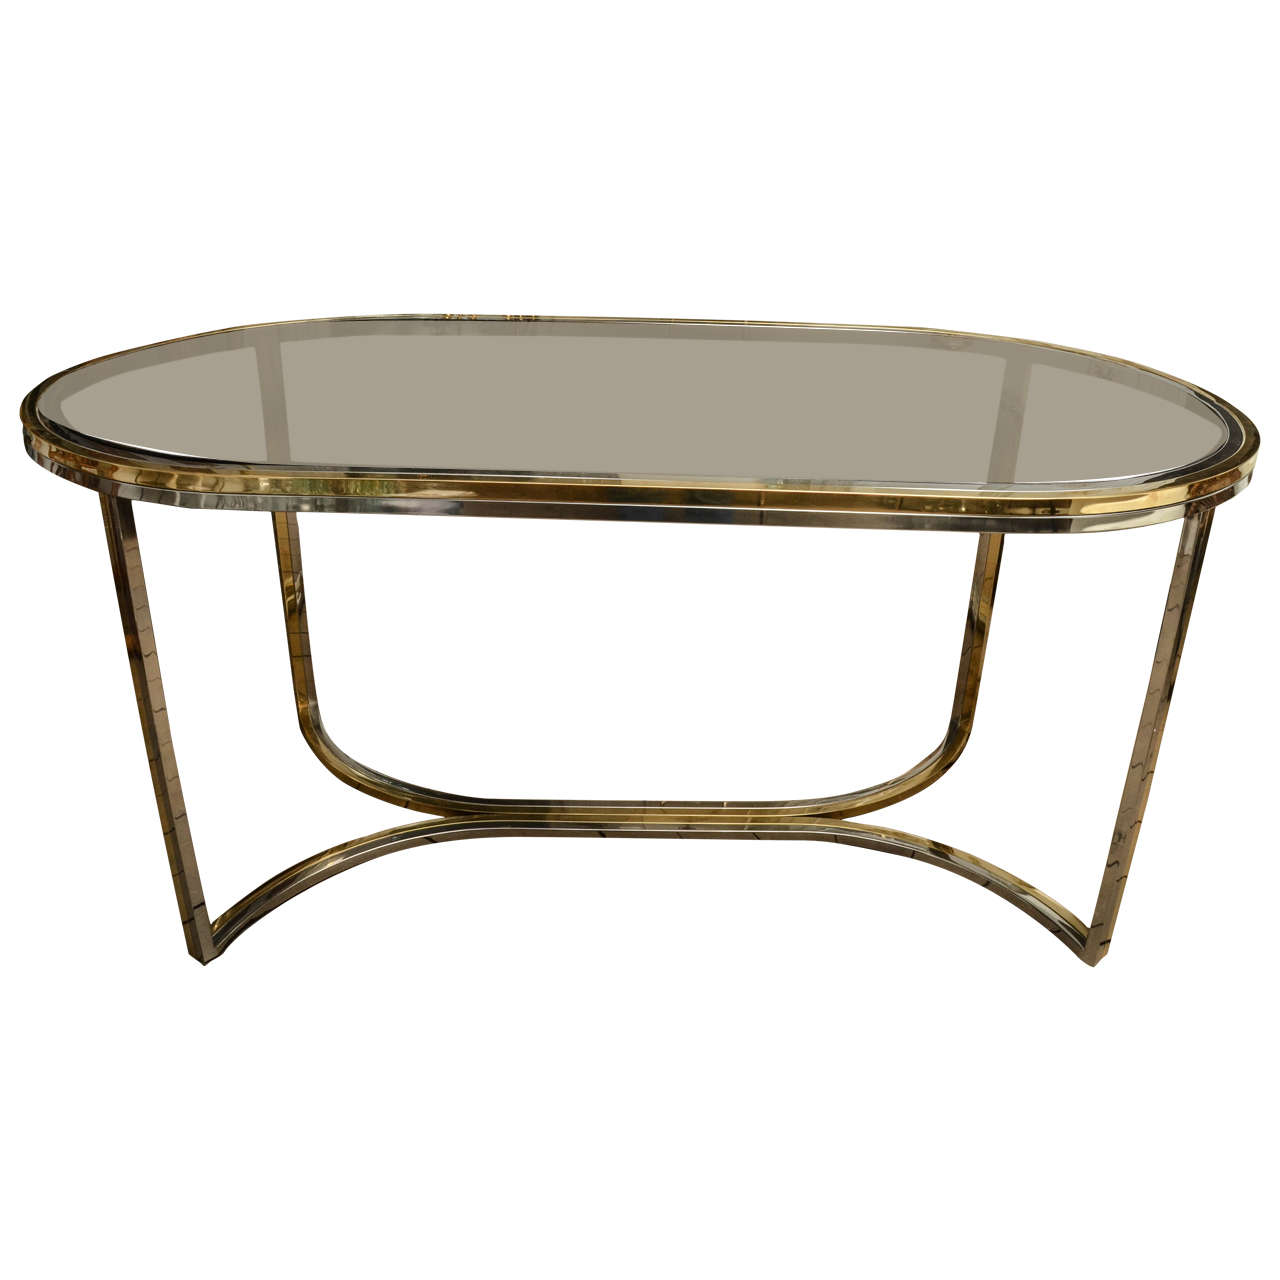 Chrome and brass oval dining table with smoked glass top at 1stdibs Dining room furniture glass